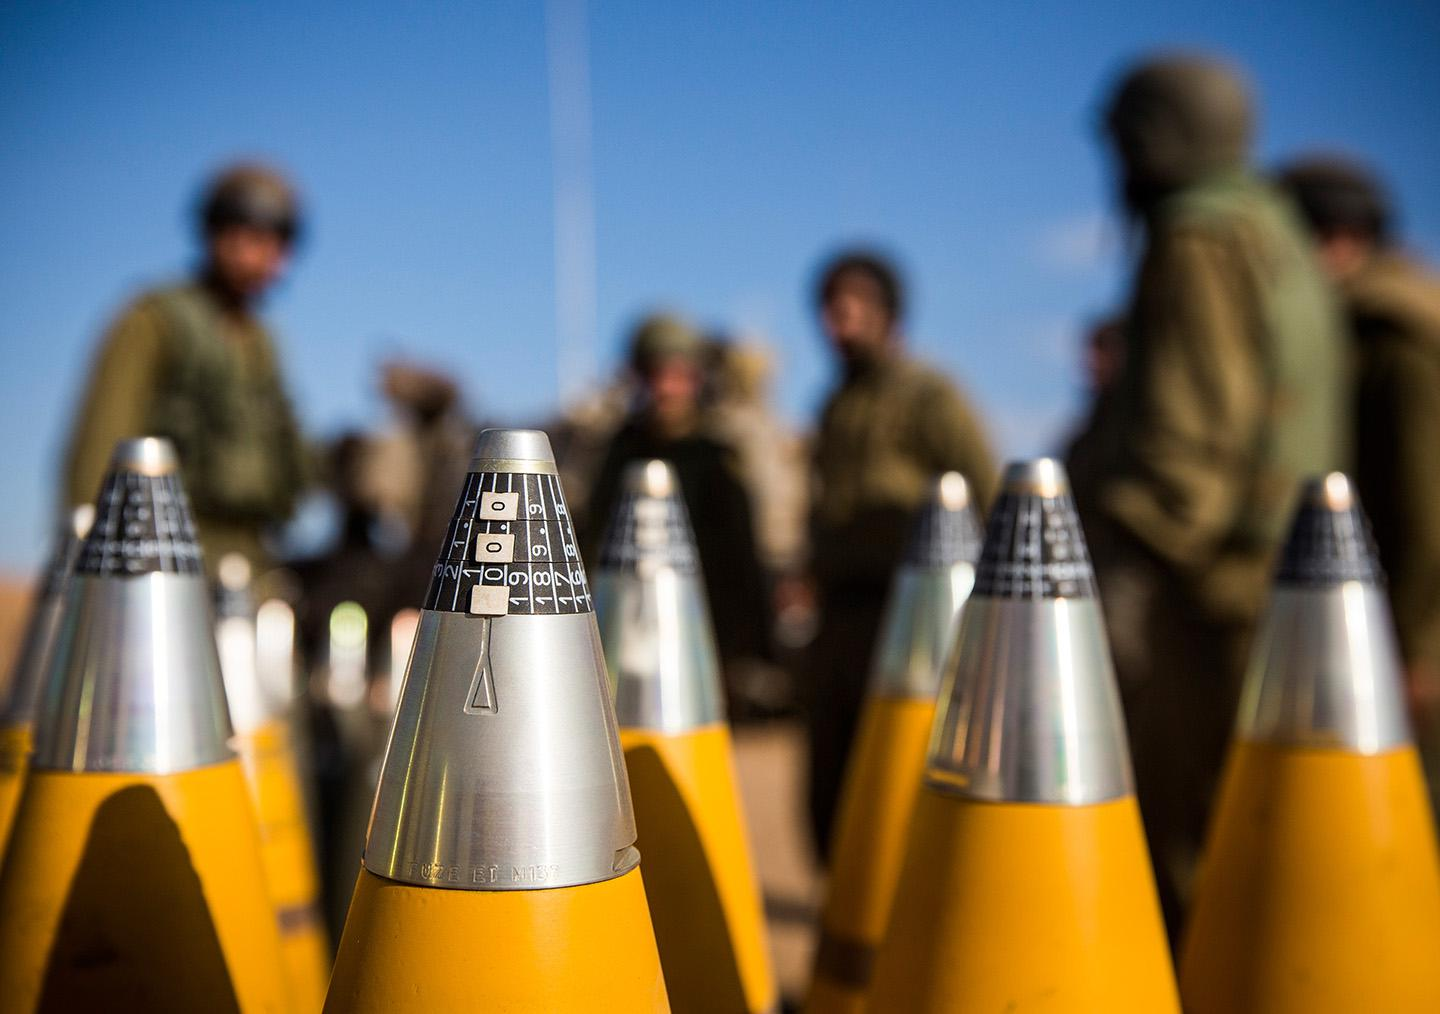 Israeli artillery shells sit waiting to be fired into Gaza.